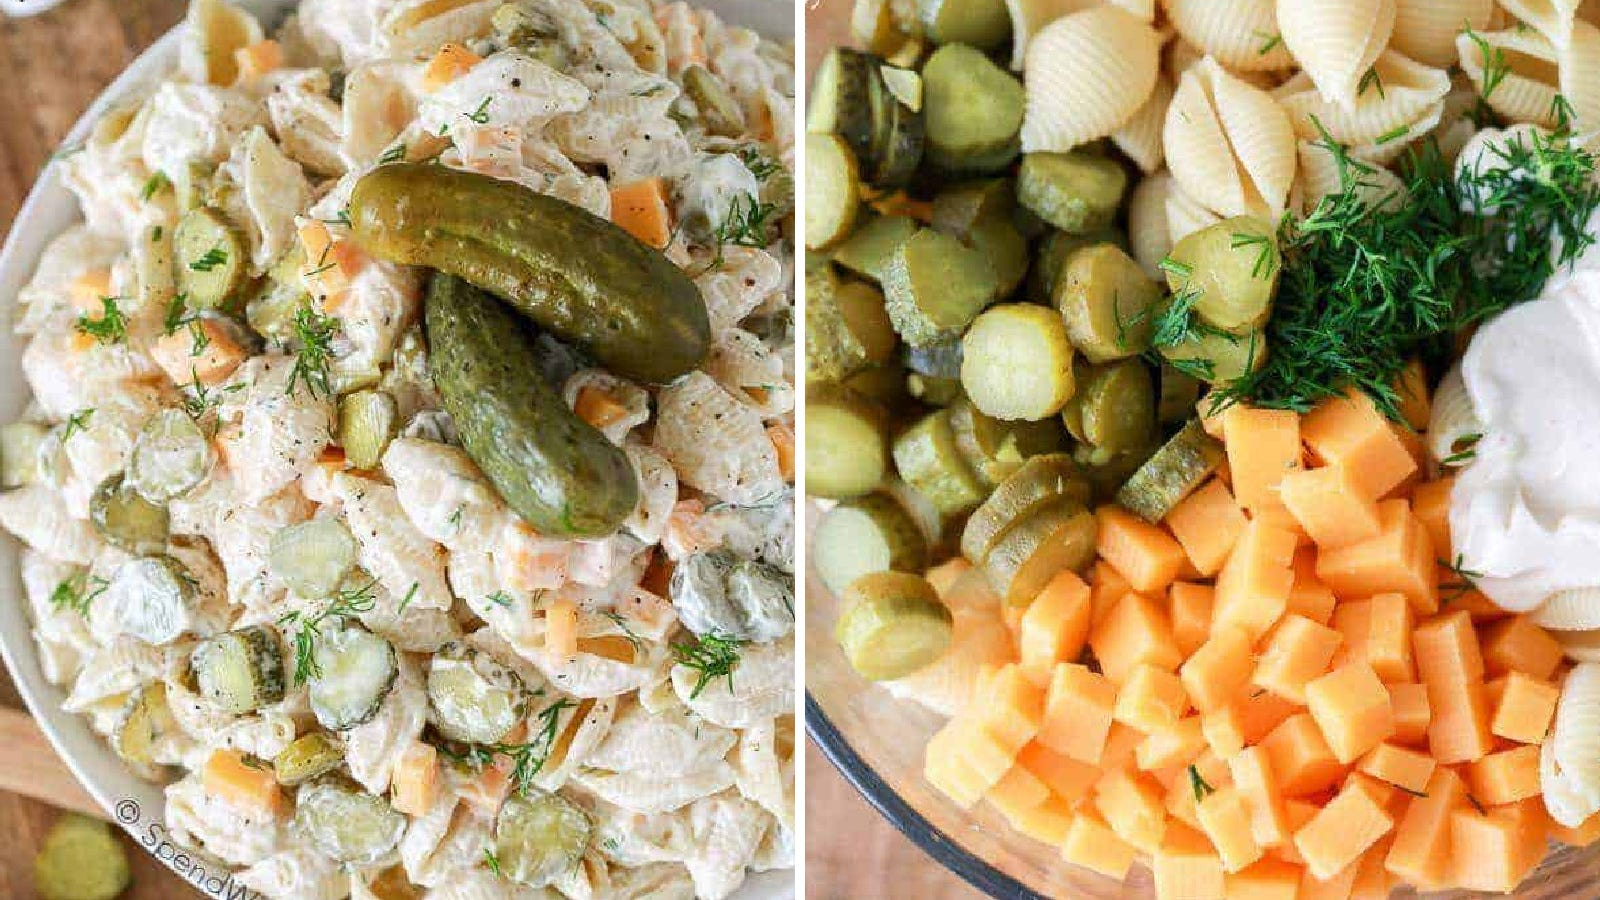 Two images displaying pasta salad filled with fresh dill and sliced pickles. The left image is the finished salad, and the right image is a bowl filled with all the ingredients used to make the dish.